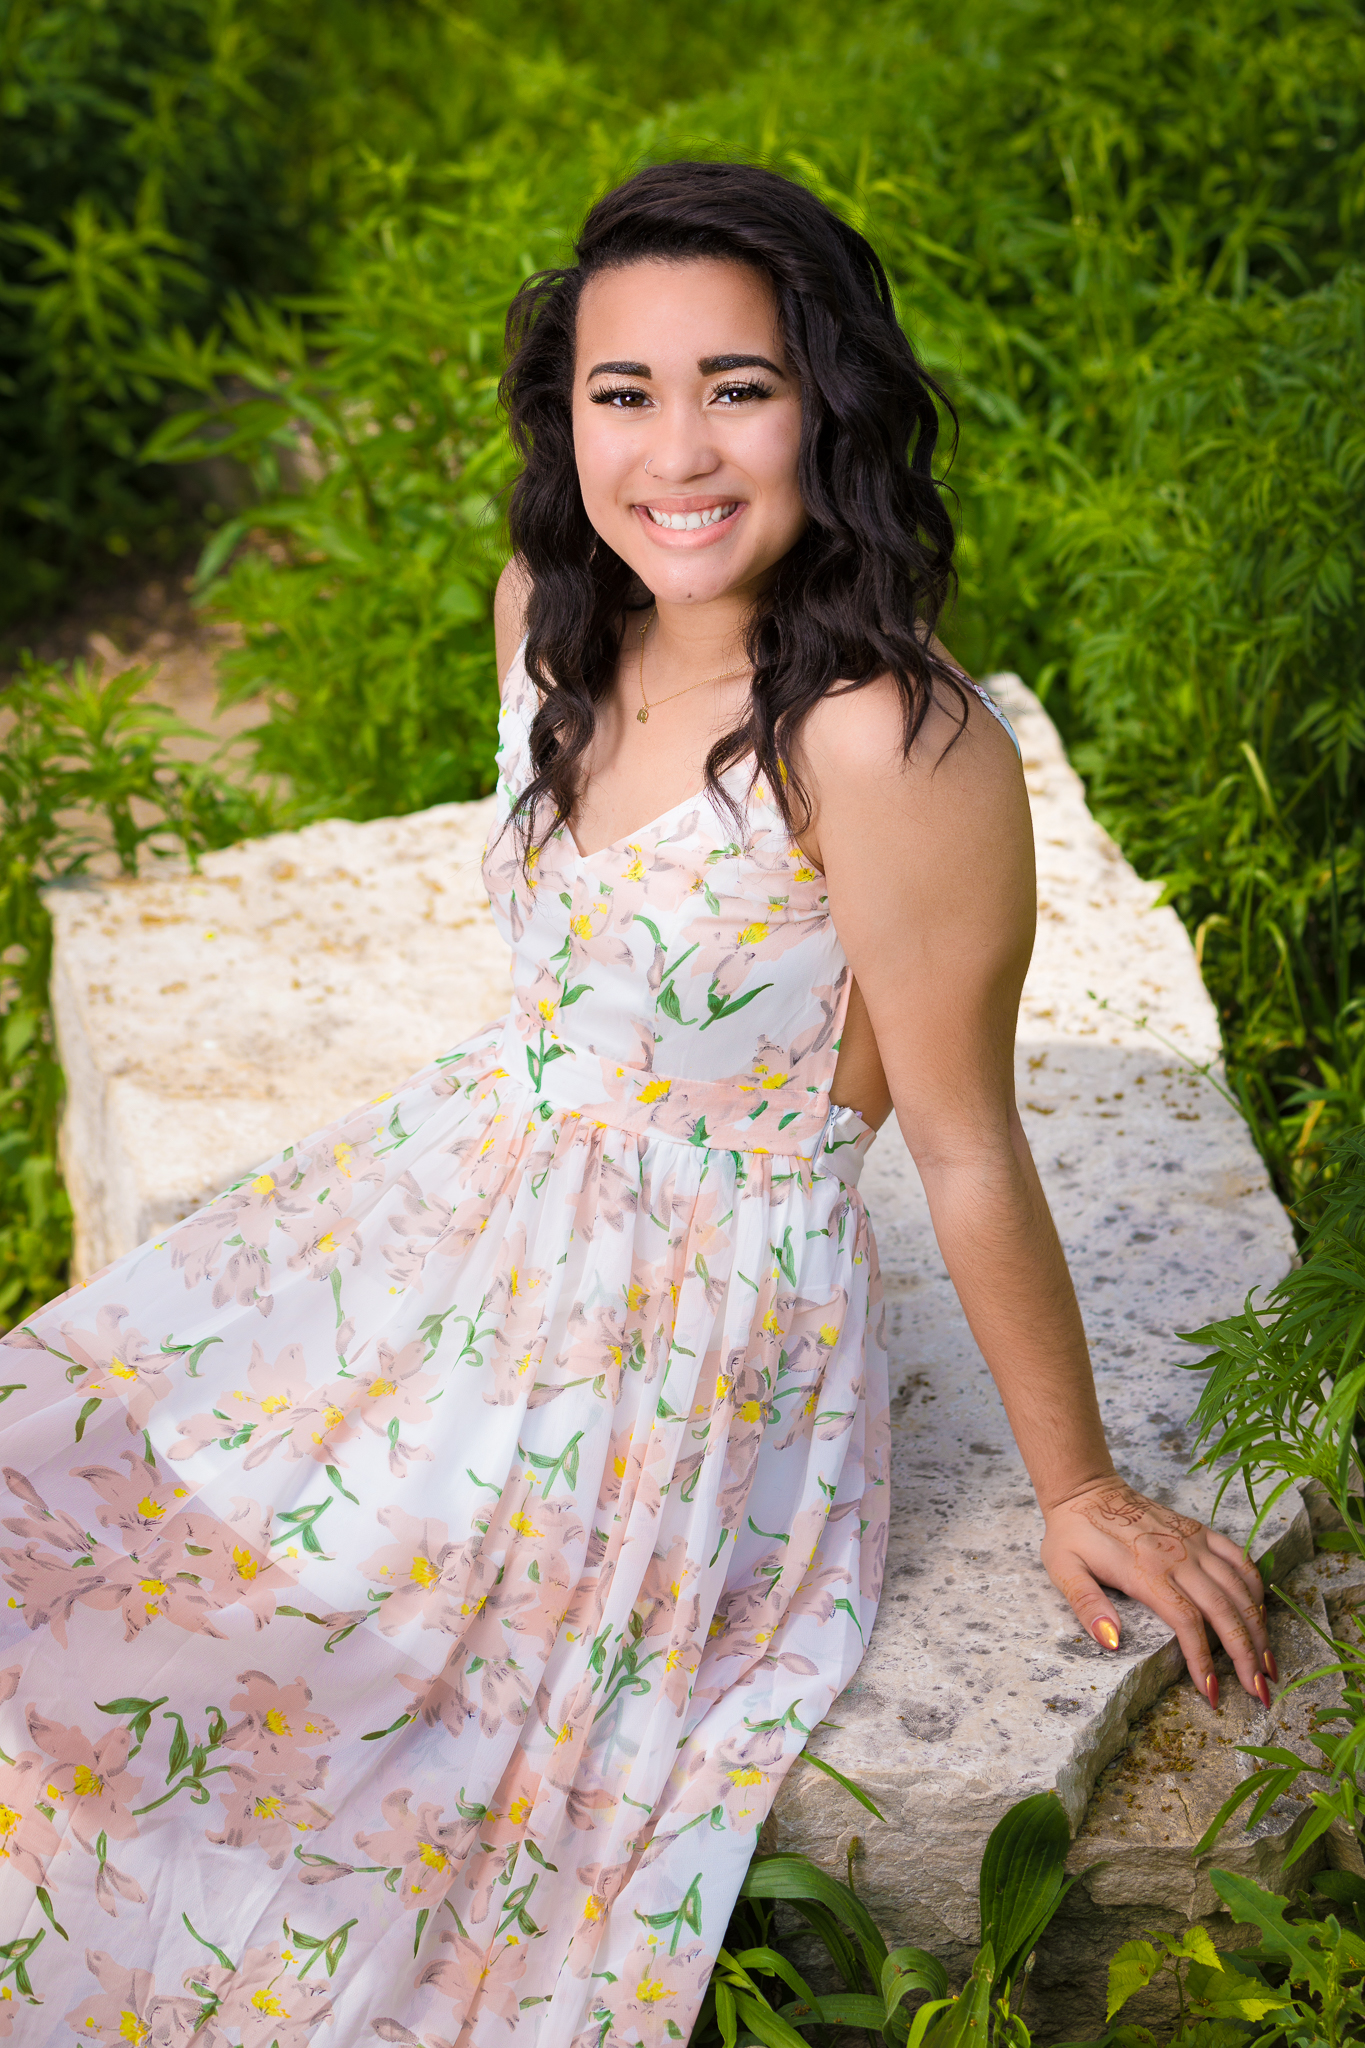 makayla_senior_photo_chicago-102.jpg